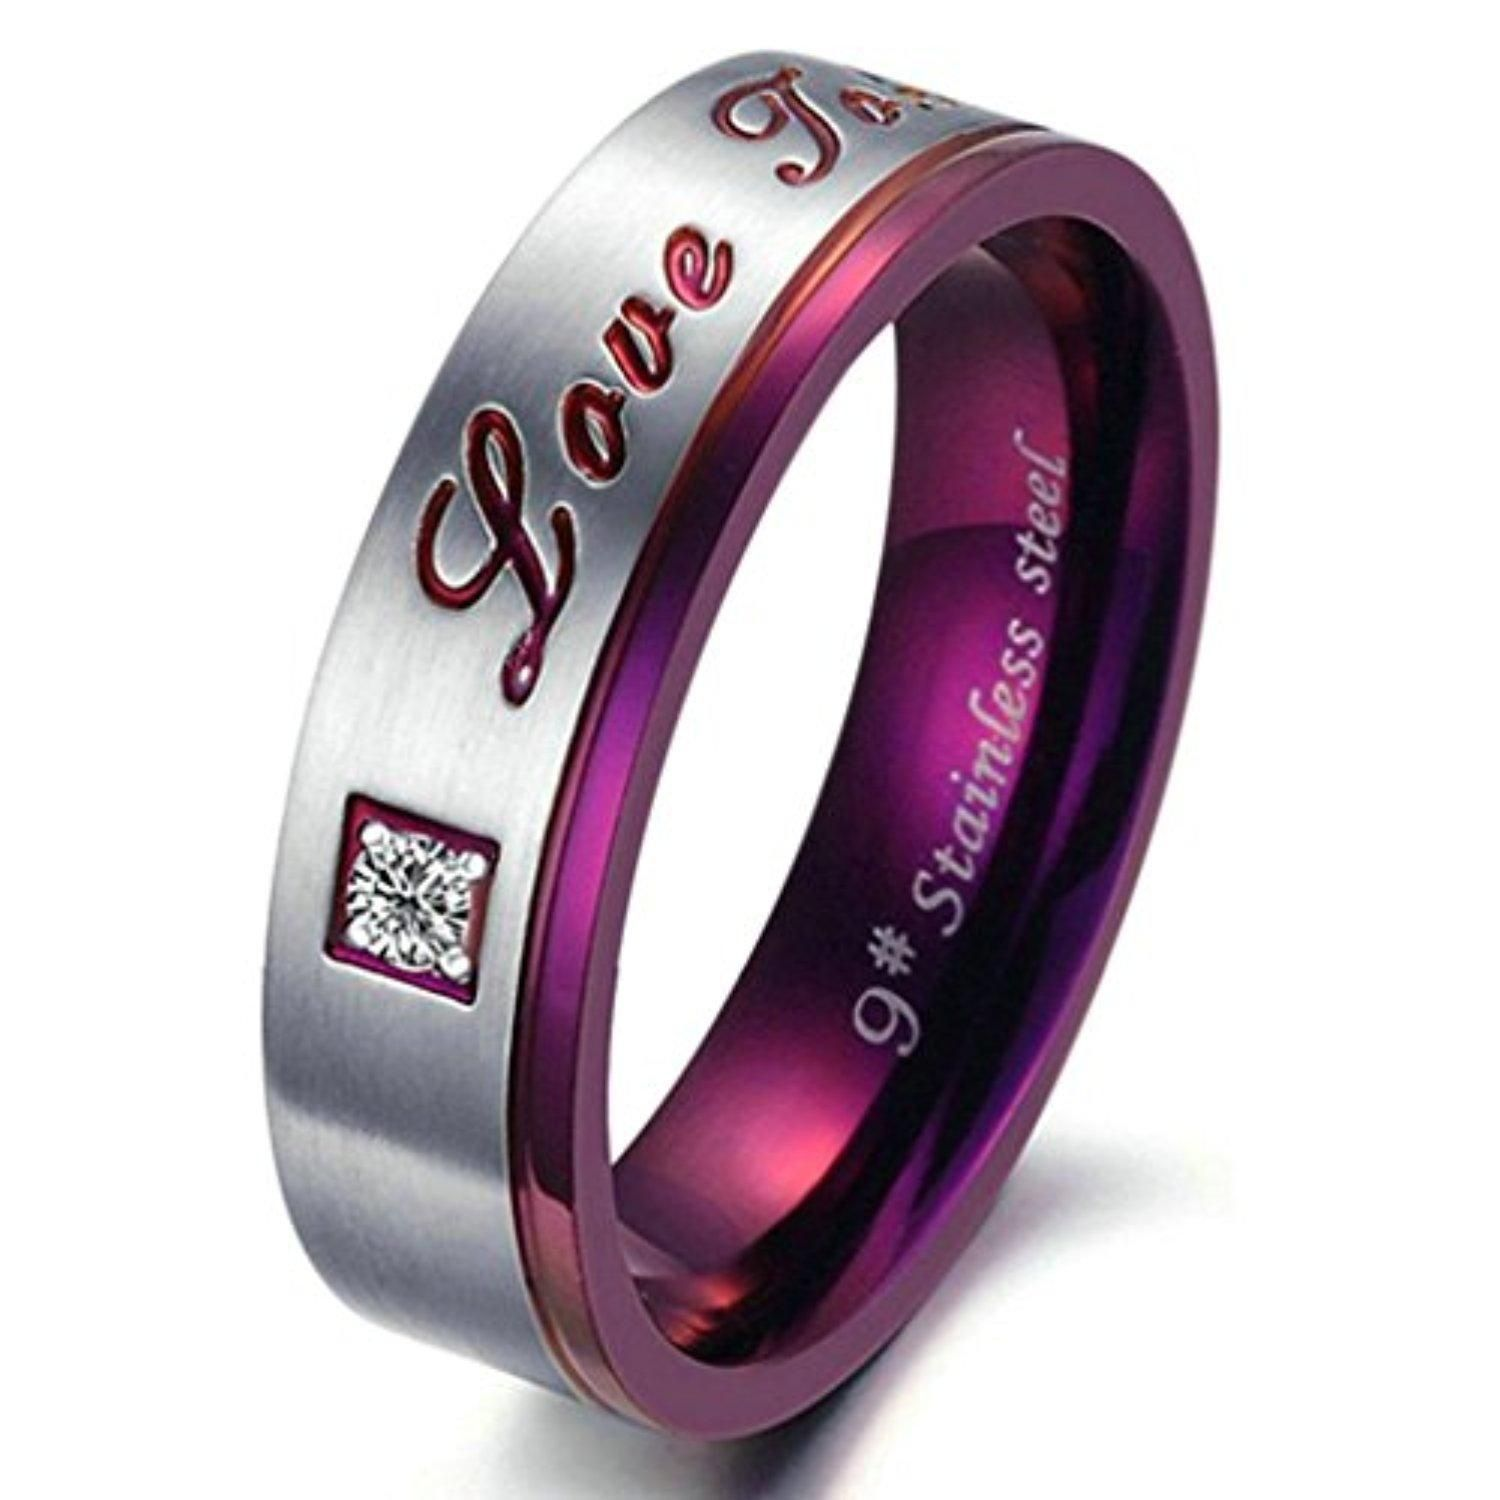 Aooaz Stainless Steel Ring For Women CZ Engraved Love